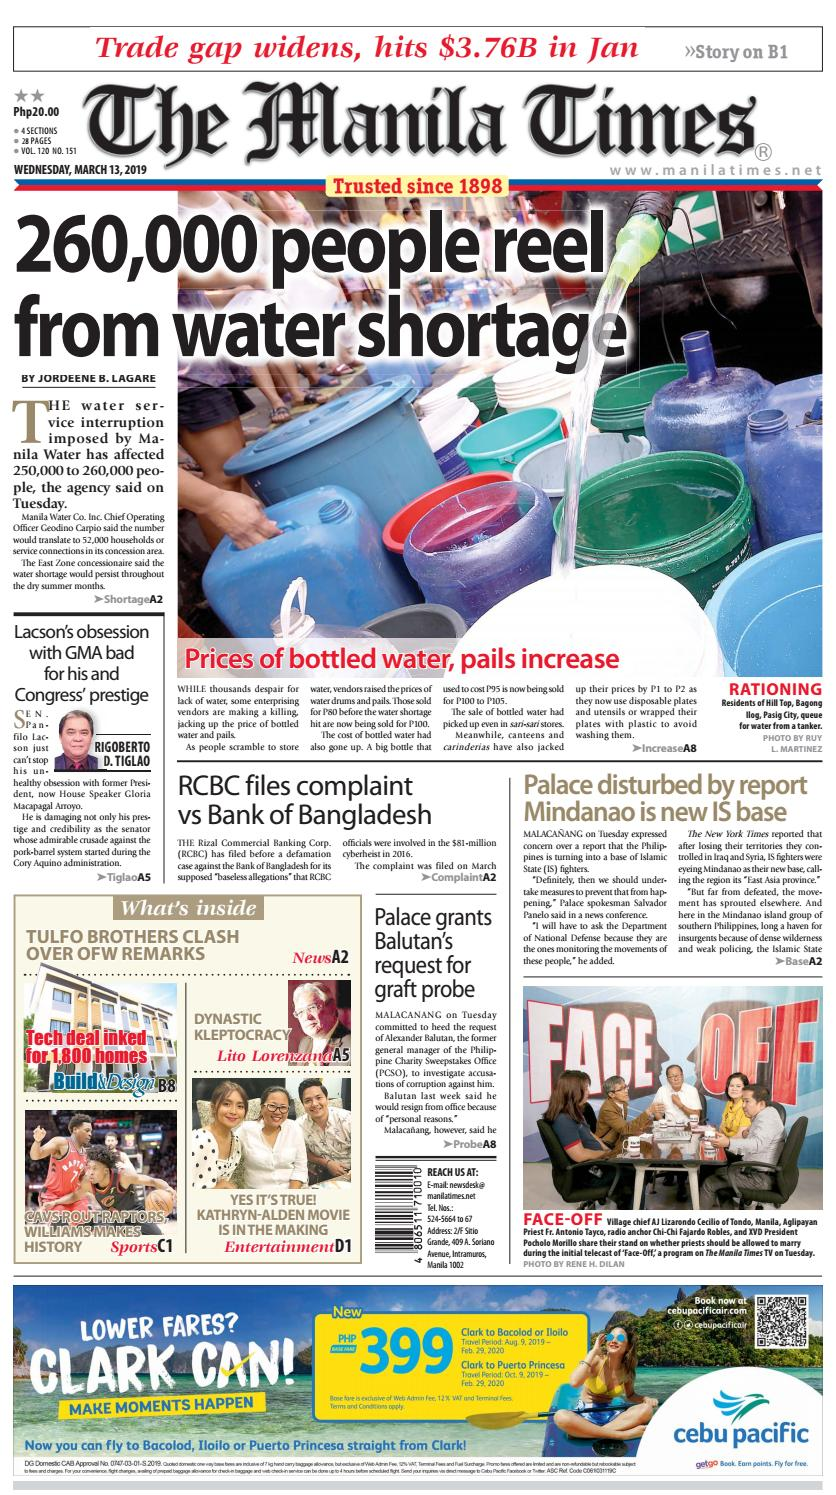 THE MANILA TIMES | MARCH 13, 2019 by The Manila Times - issuu